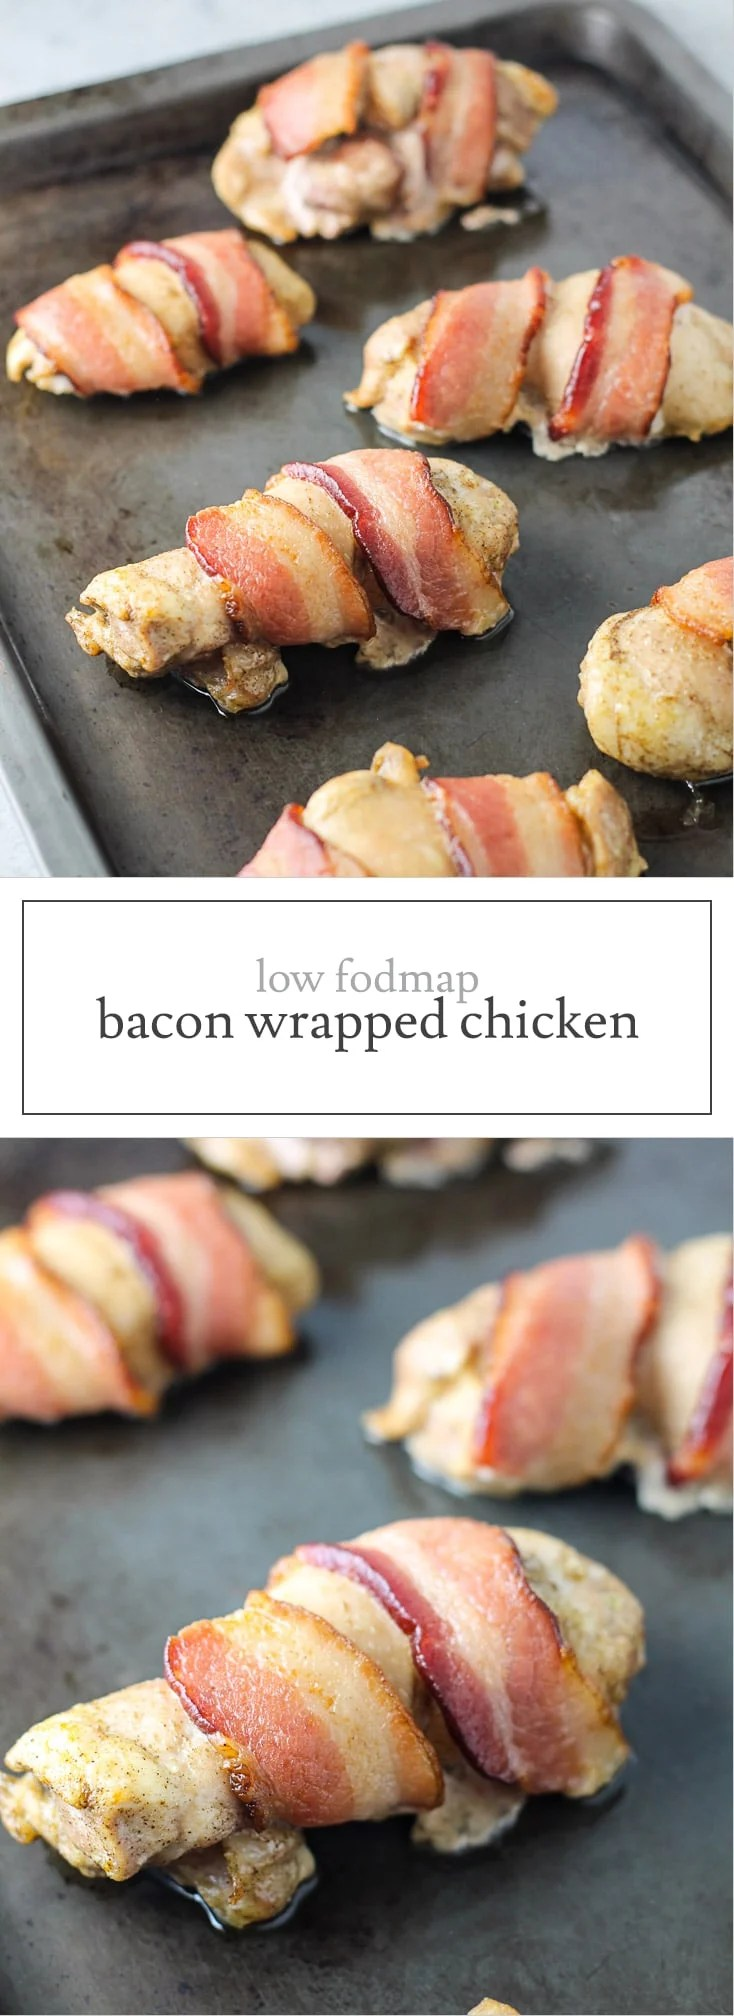 With just four ingredients, this Low Fodmap Bacon Wrapped Chicken is an easy, flavorful entree. Serve with steamed veggies or over a bed of lettuce. Whole30. Paleo. Gluten Free. Dairy Free.